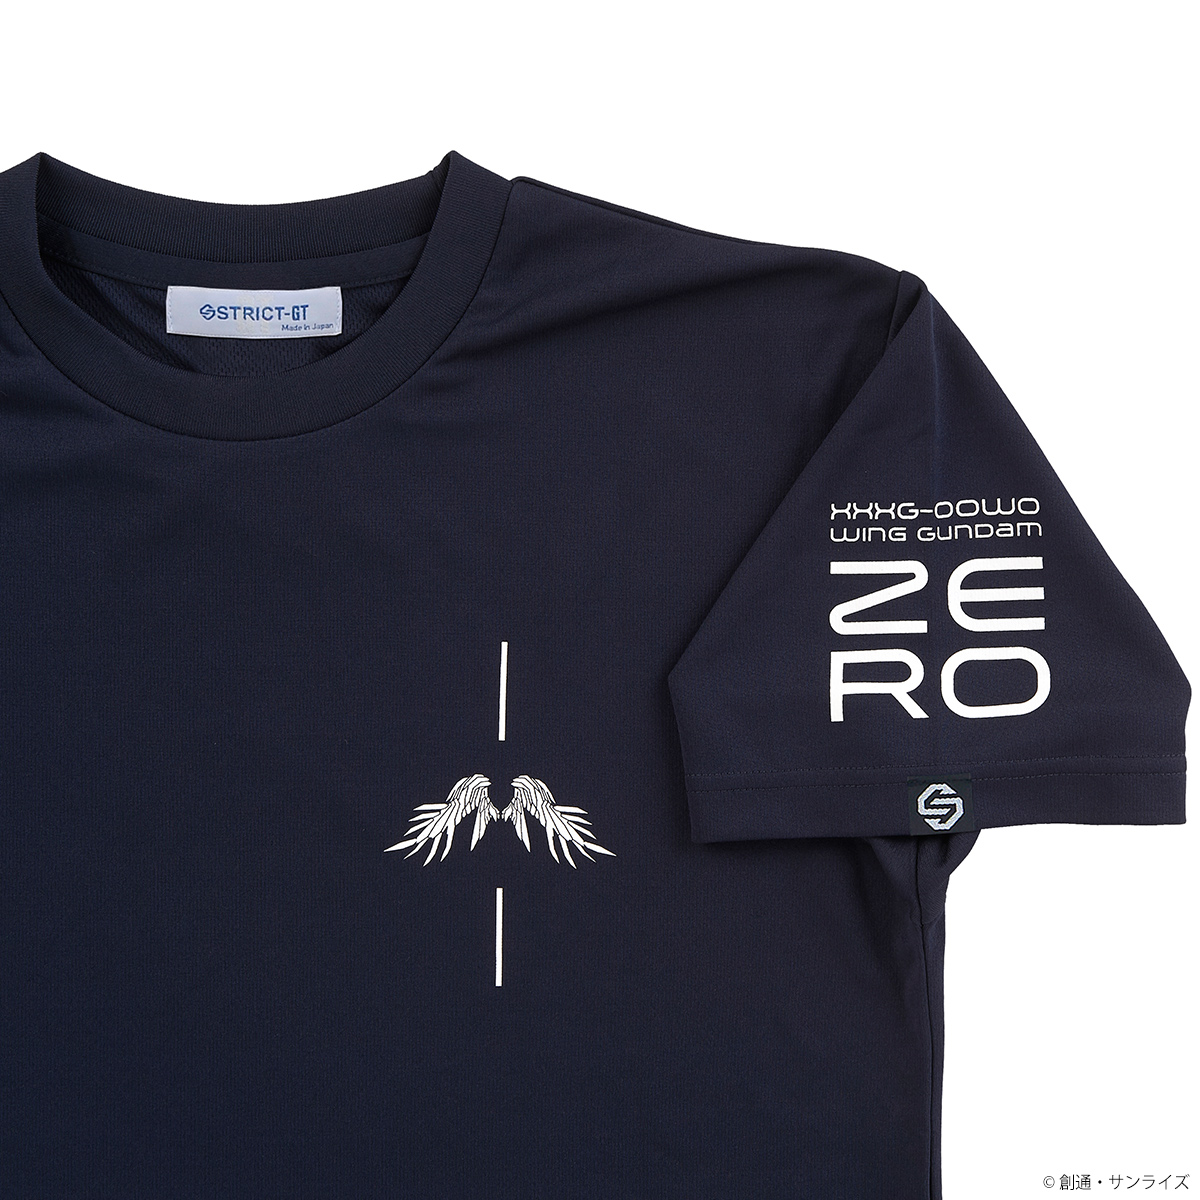 Wing Gundam Zero Quick-Drying T-shirt—Mobile Suit Gundam Wing/STRICT-G Collaboration